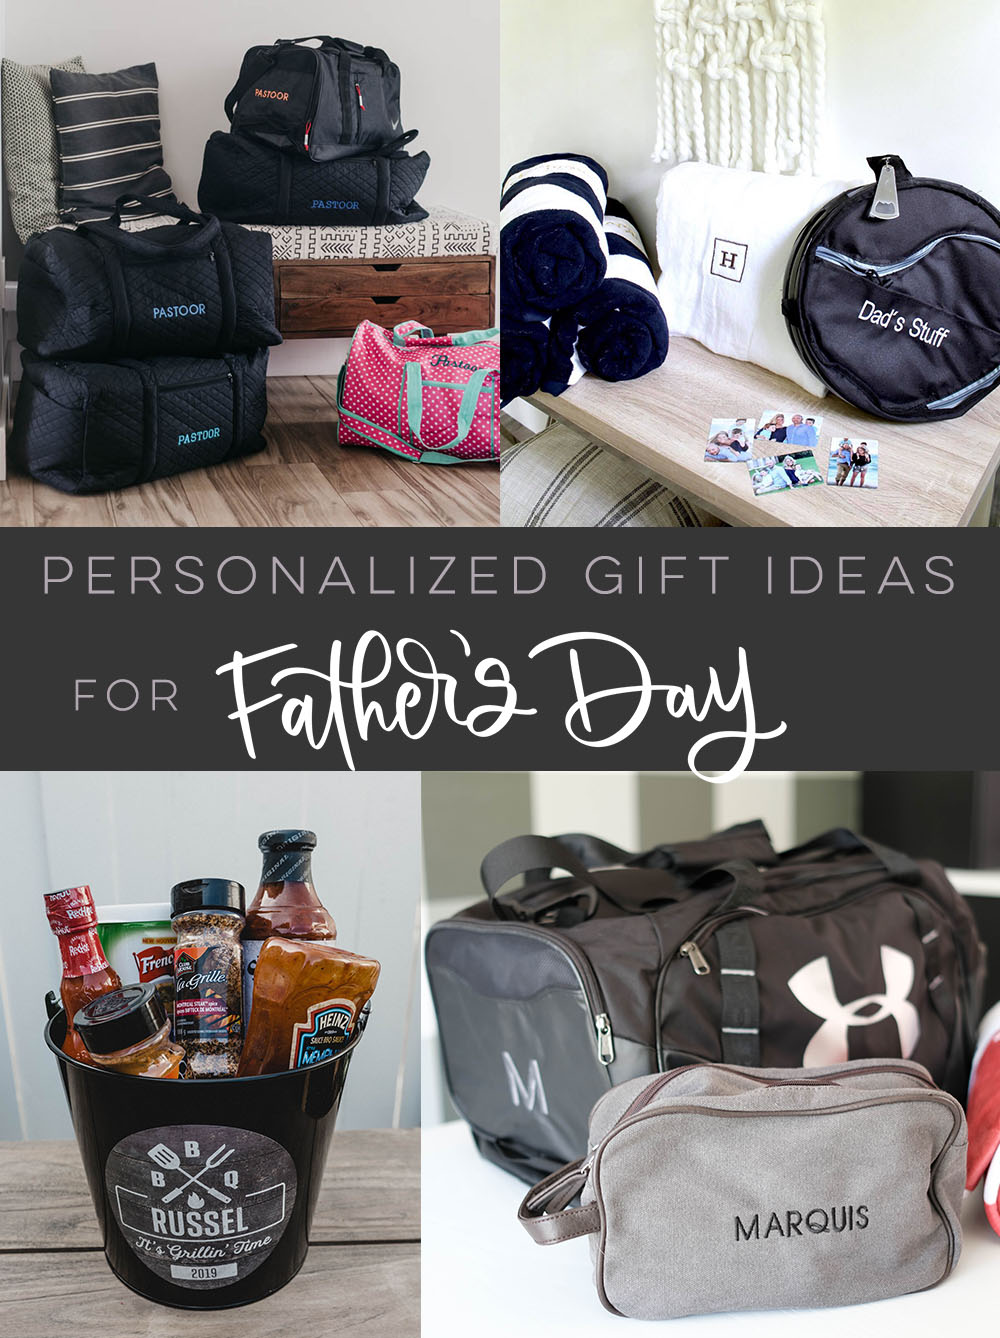 Personalized gift ideas for Father's Day... some great ones in here!